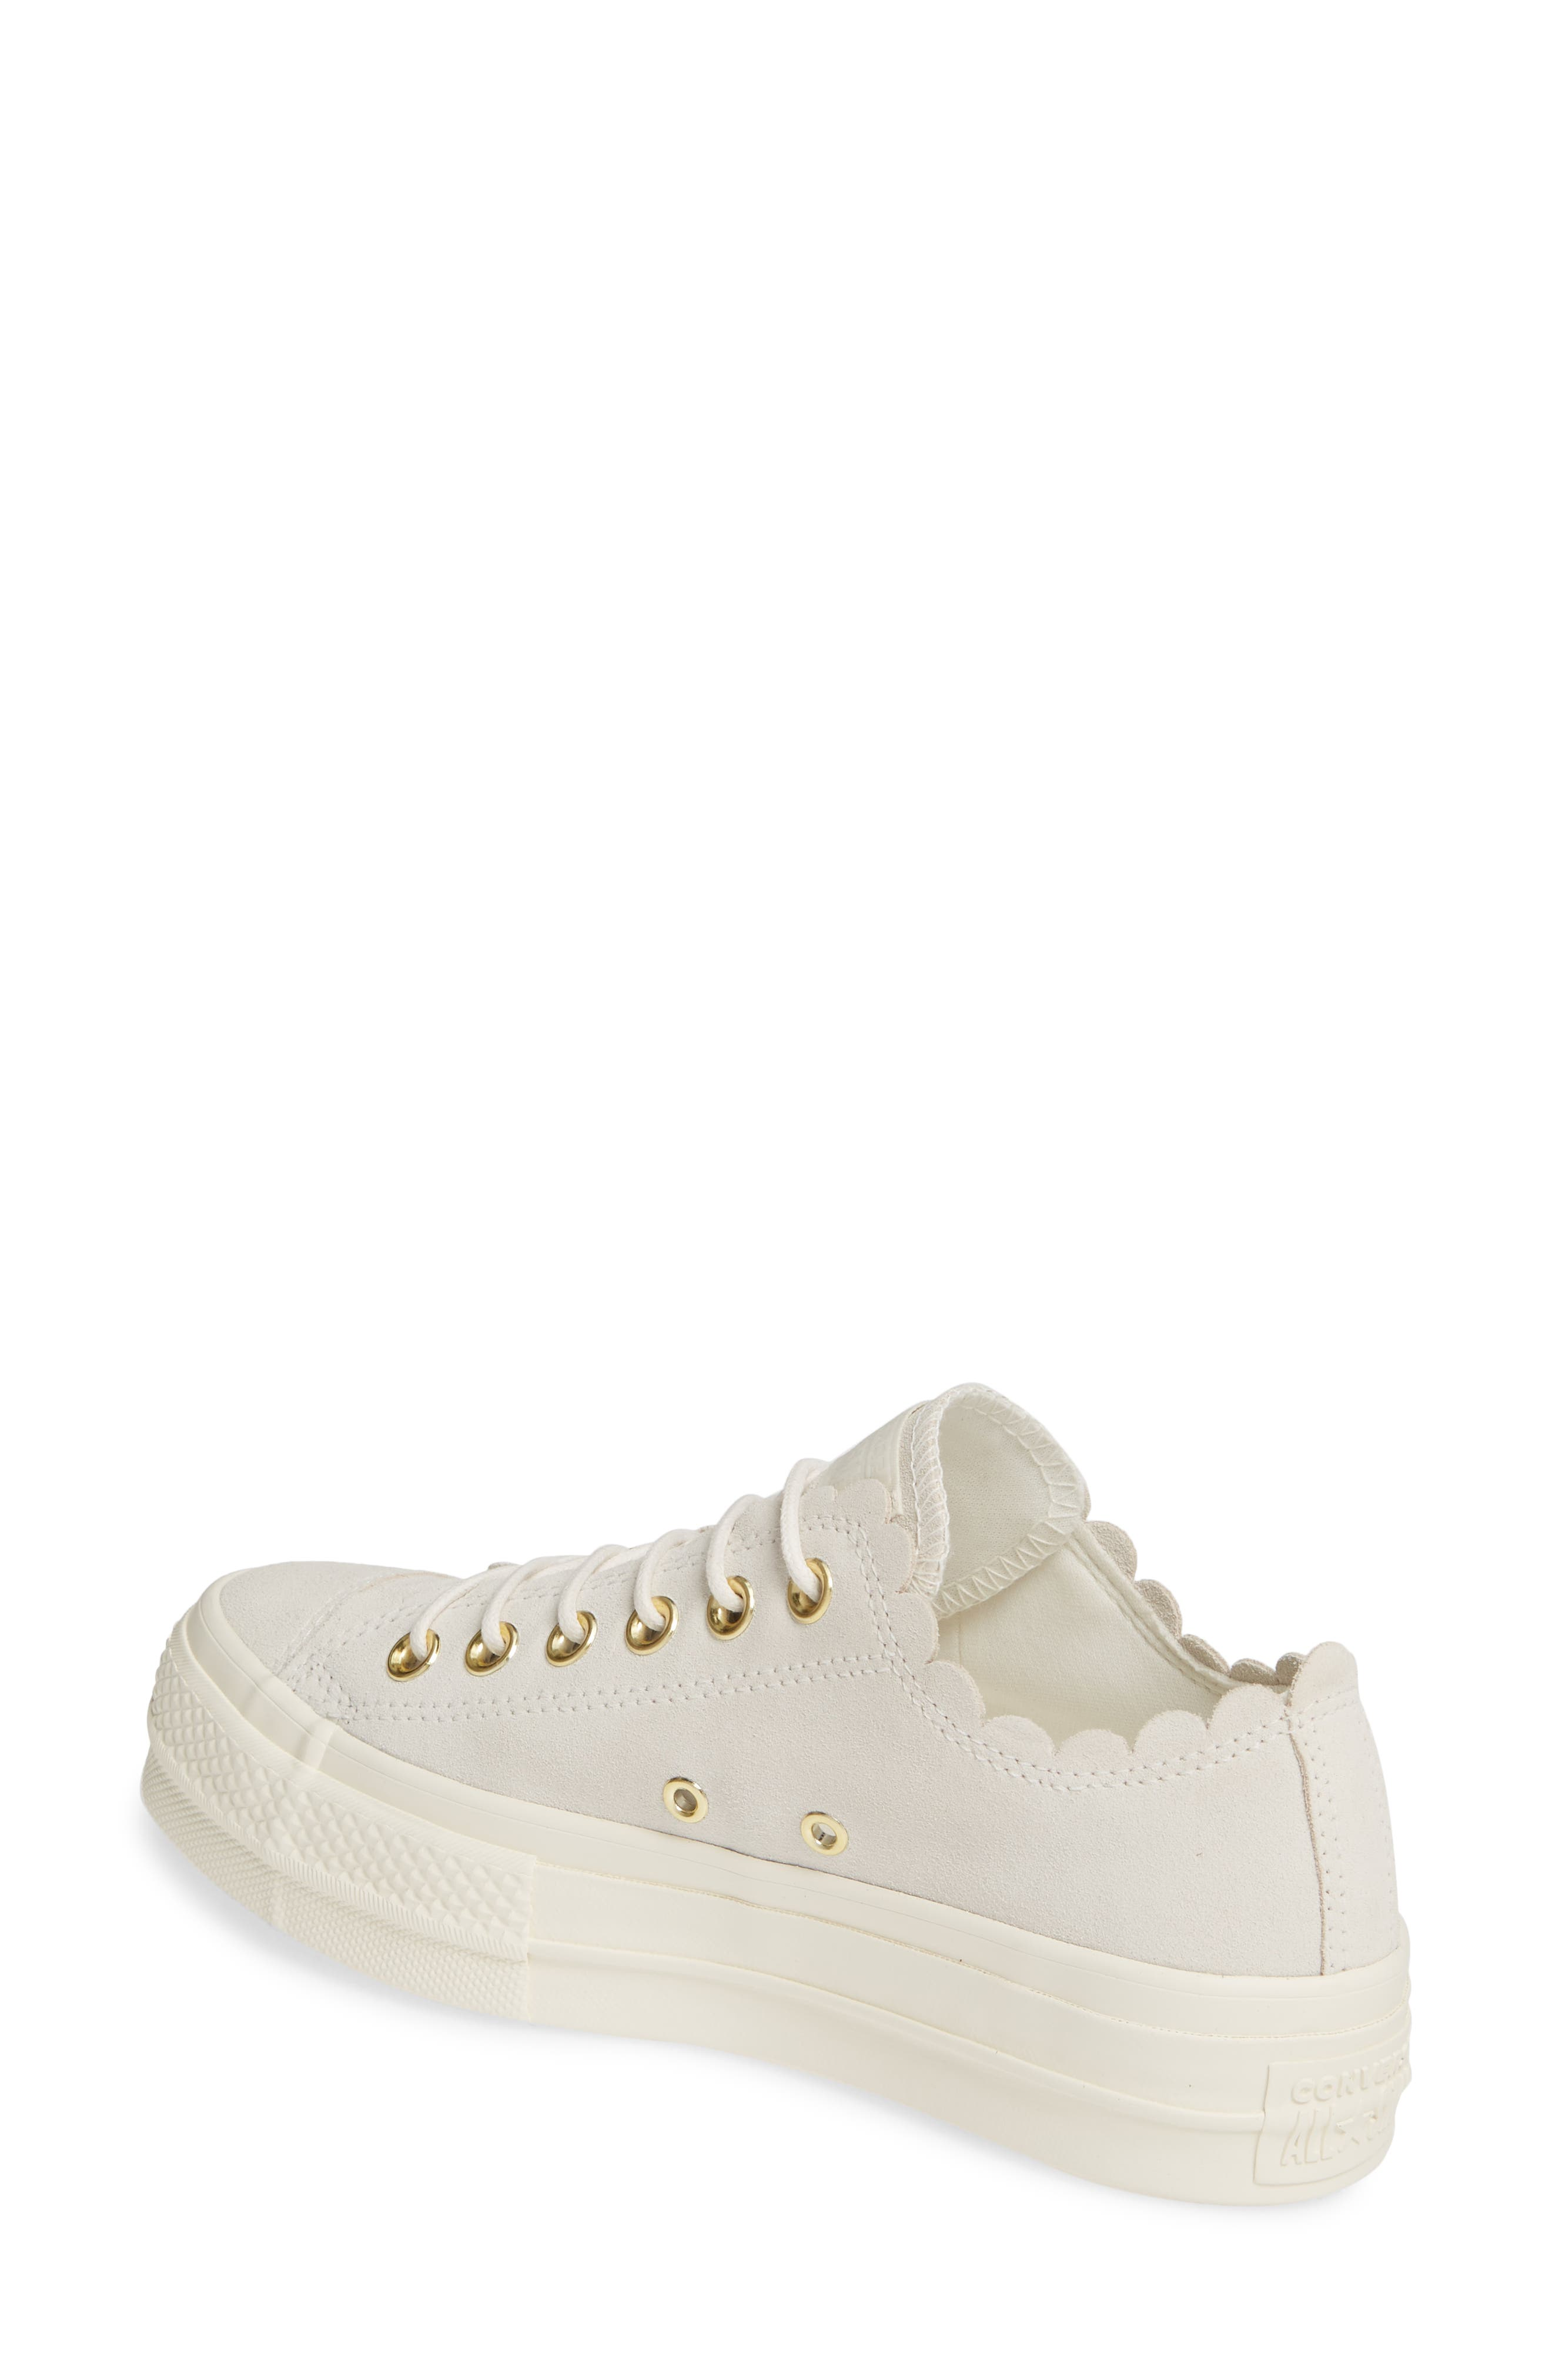 ,                             Chuck Taylor<sup>®</sup> All Star<sup>®</sup> Frilly Scallop Platform Sneaker,                             Alternate thumbnail 2, color,                             020